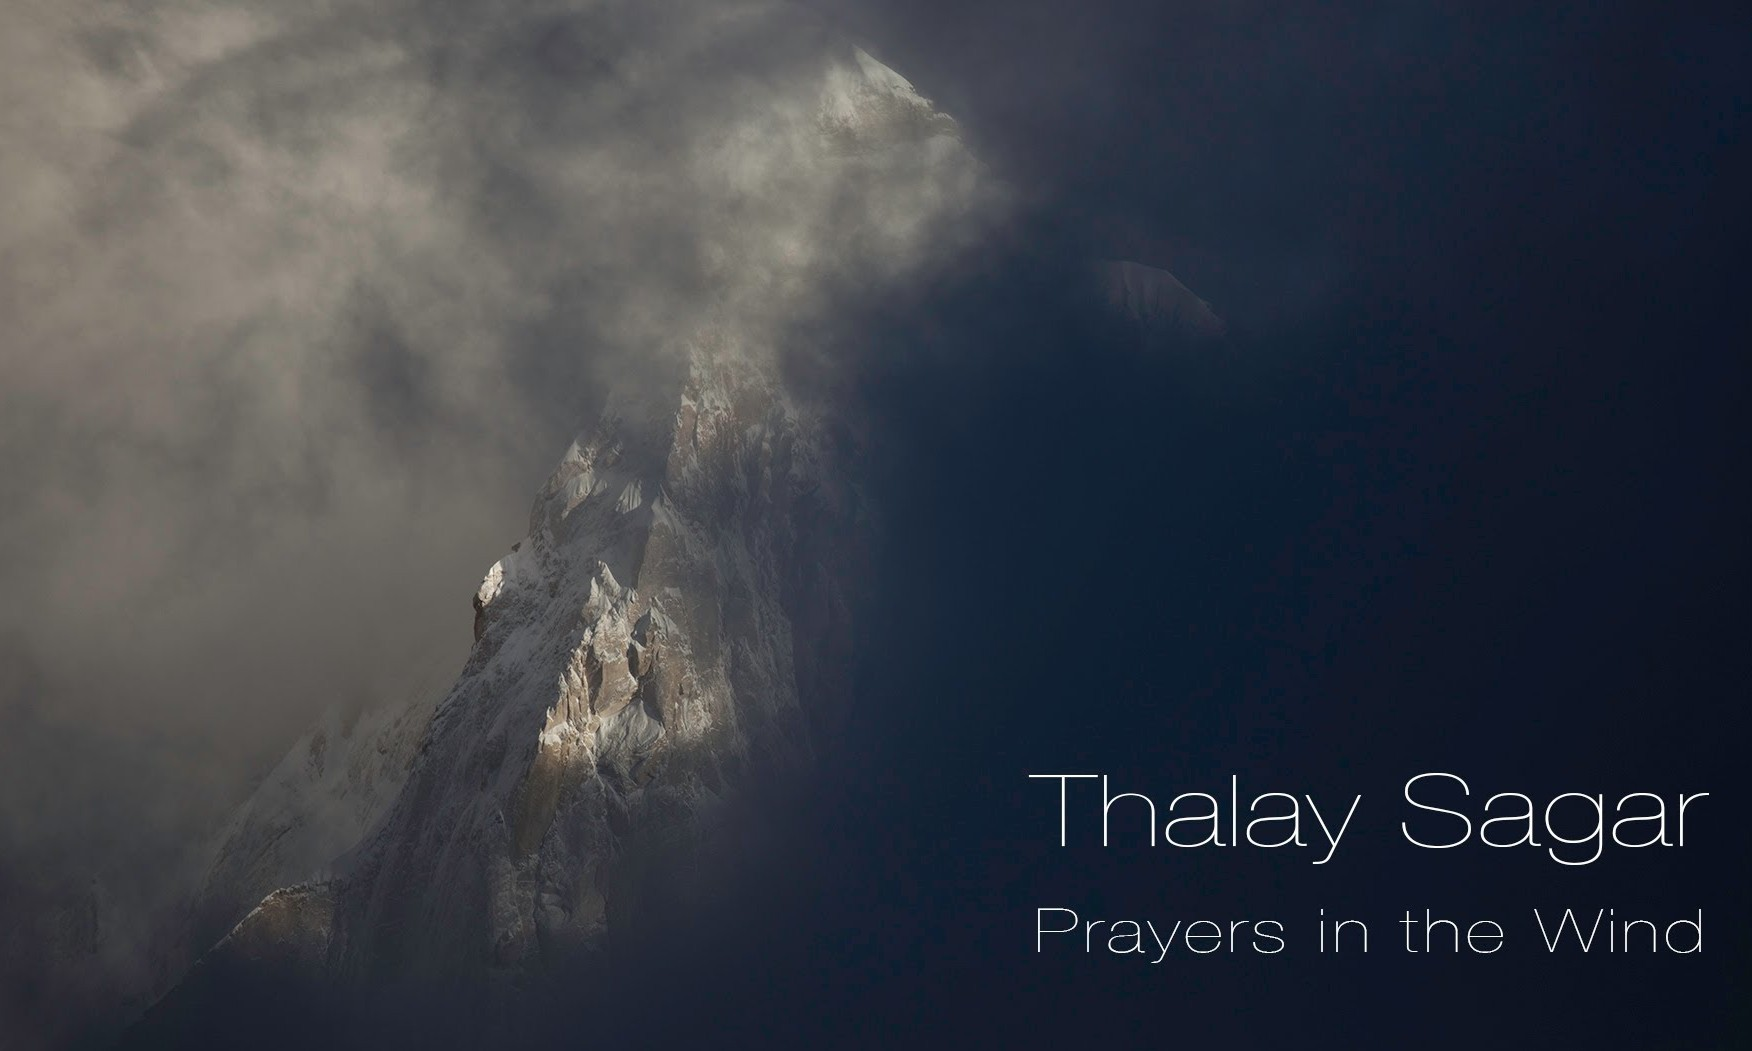 Thalay Sagar - Prayers in the Wind